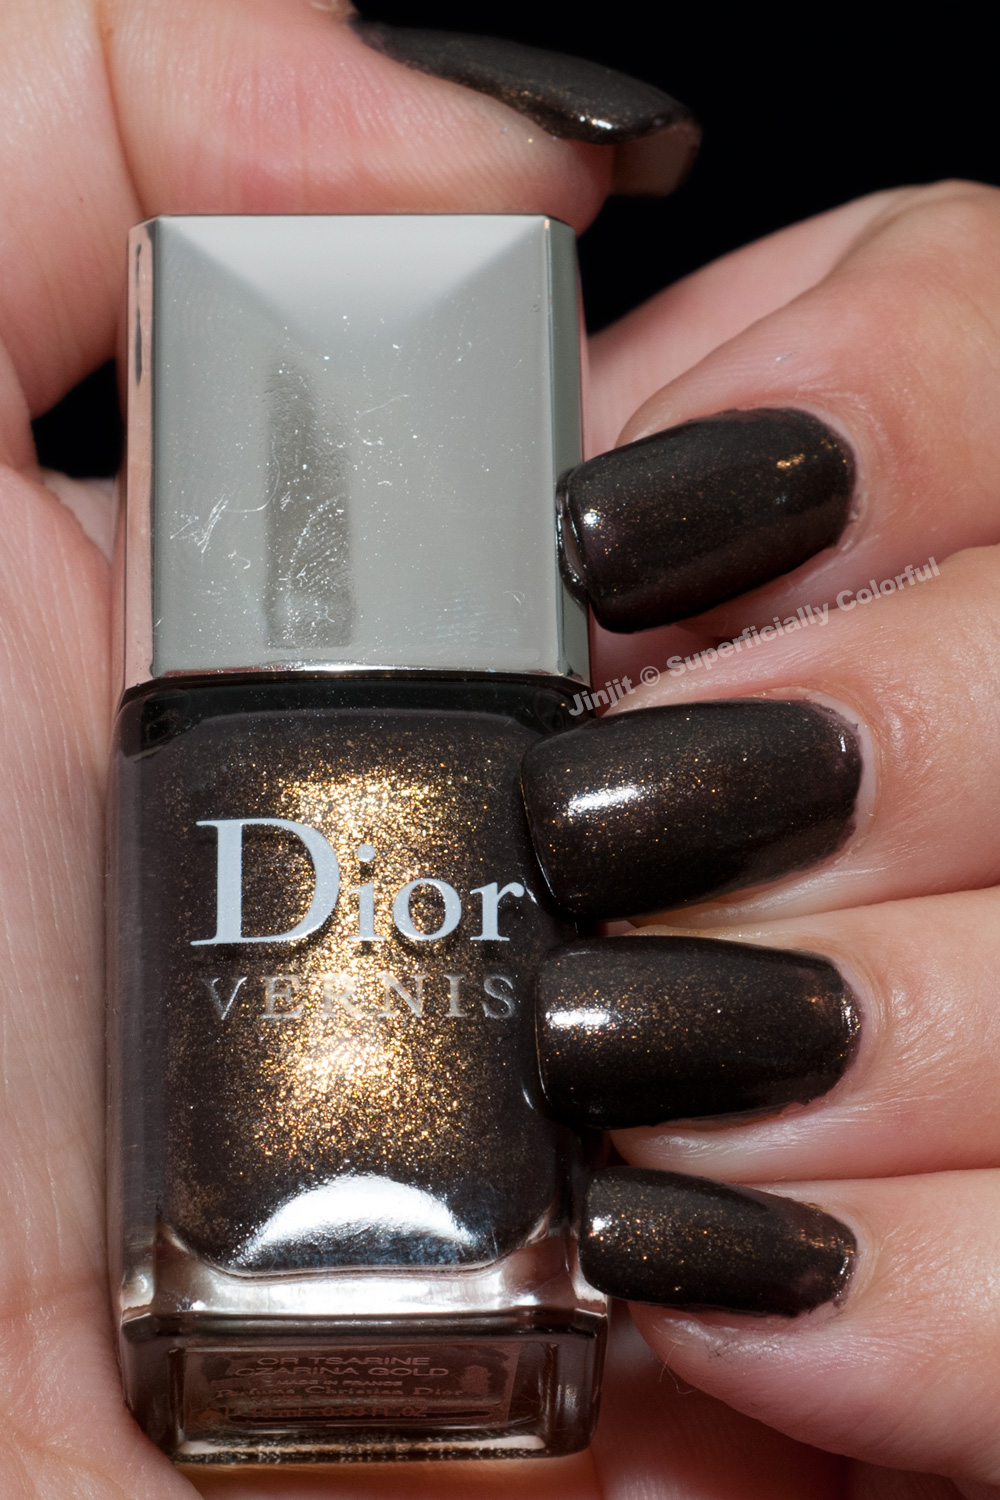 Dior Czarina Gold Or Tsarine Black and Gold Manicure